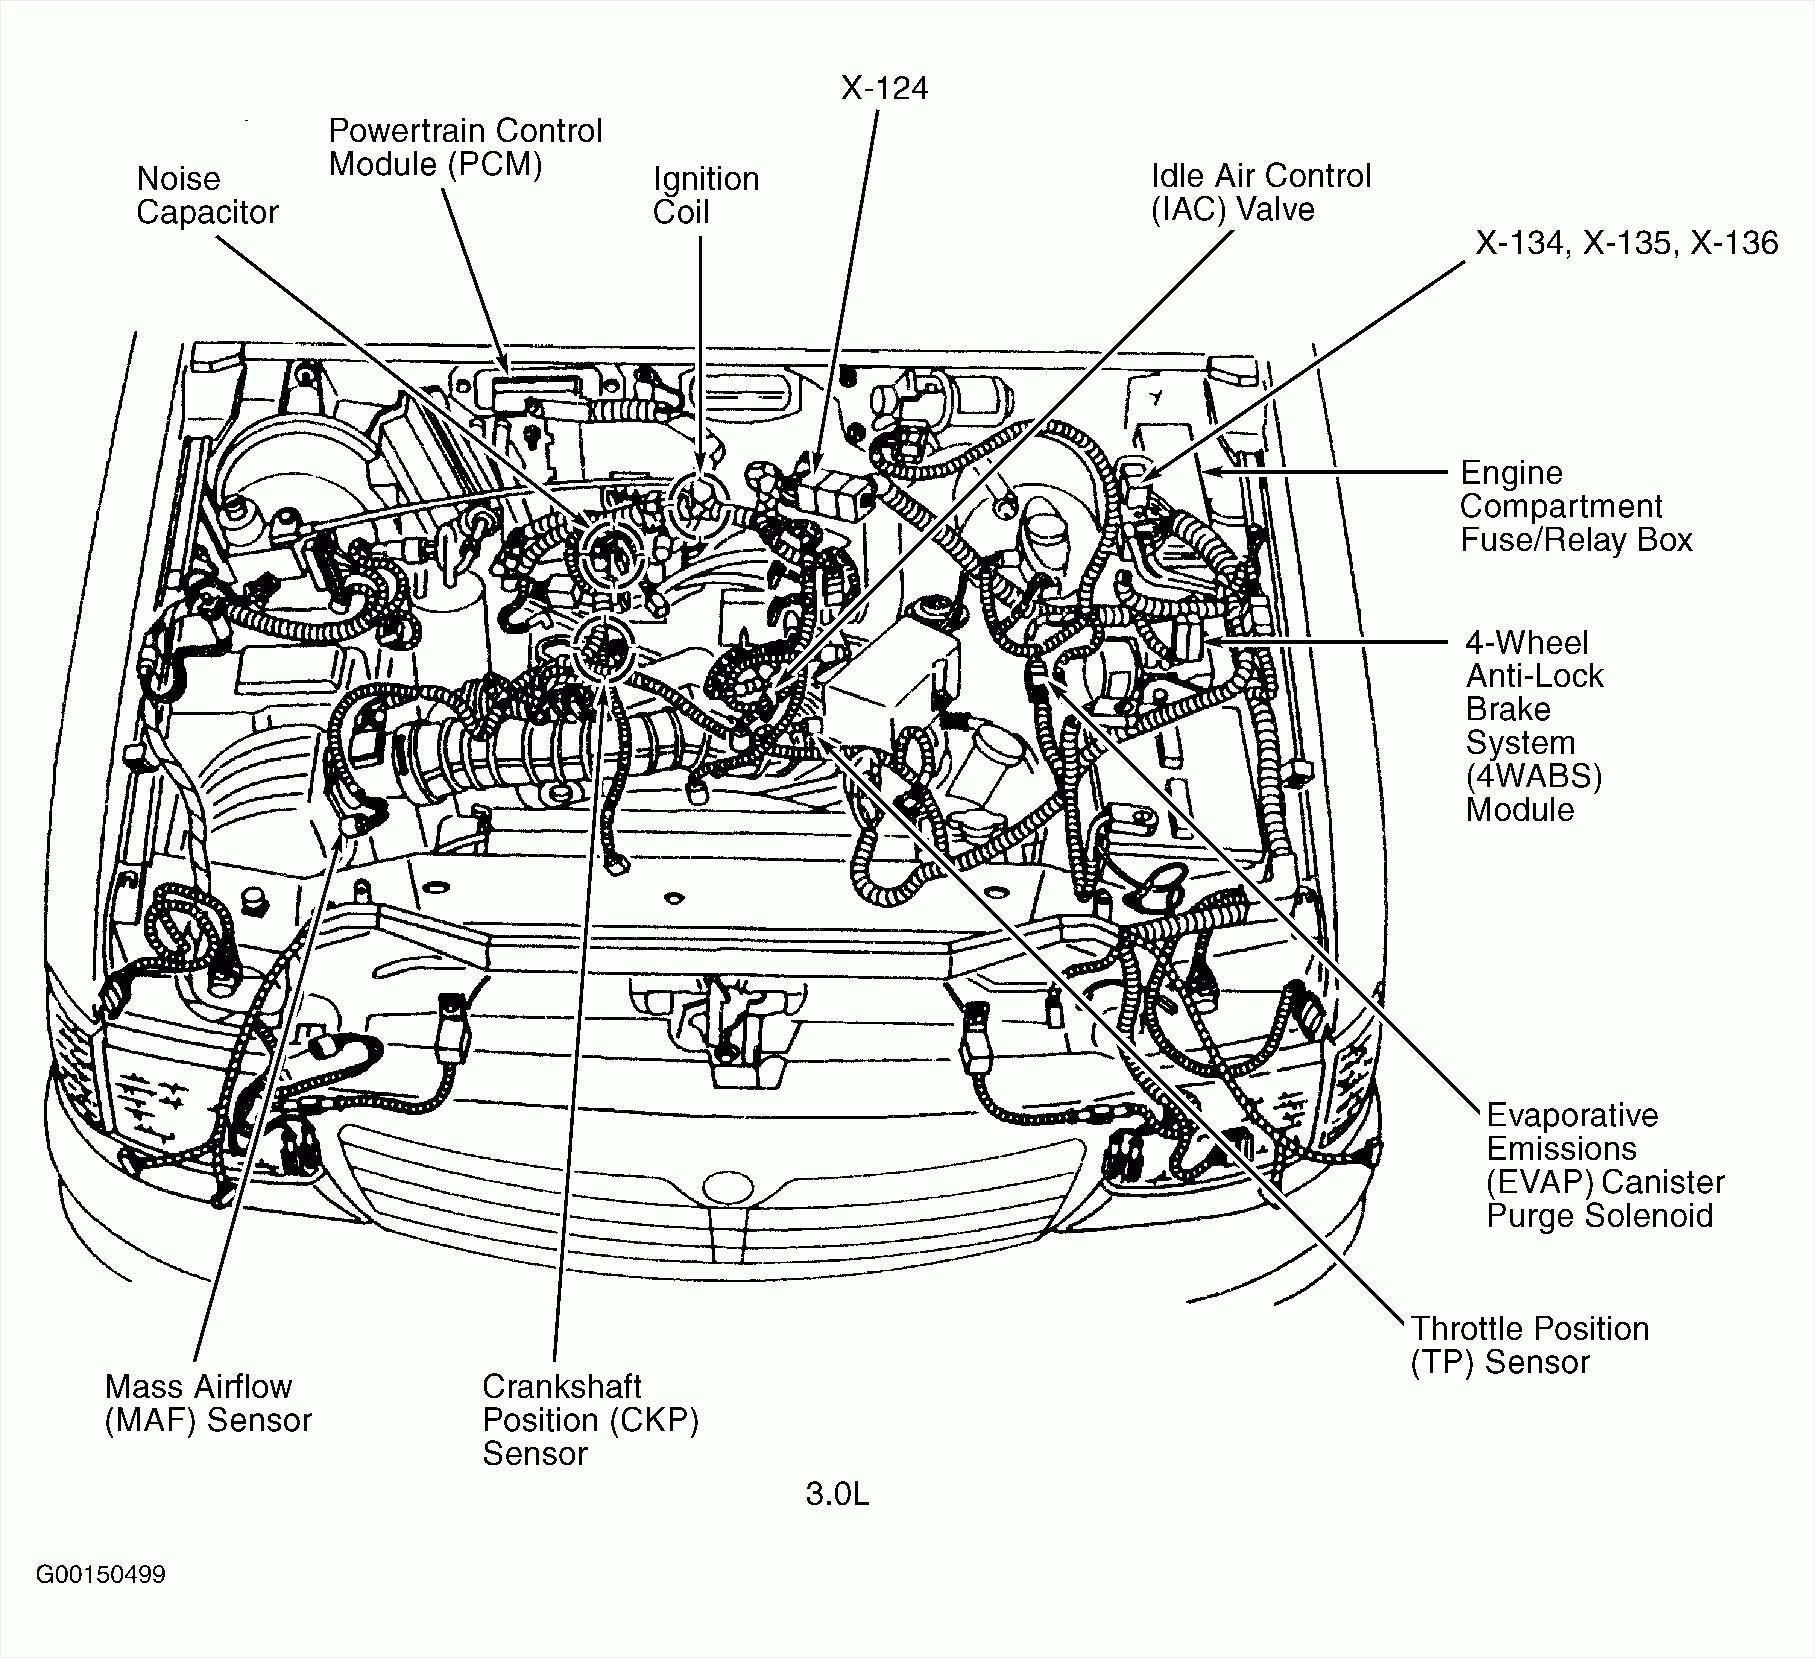 1990 toyota Camry Engine Diagram 92 toyota Truck Wiring Schematic Of 1990 toyota Camry Engine Diagram